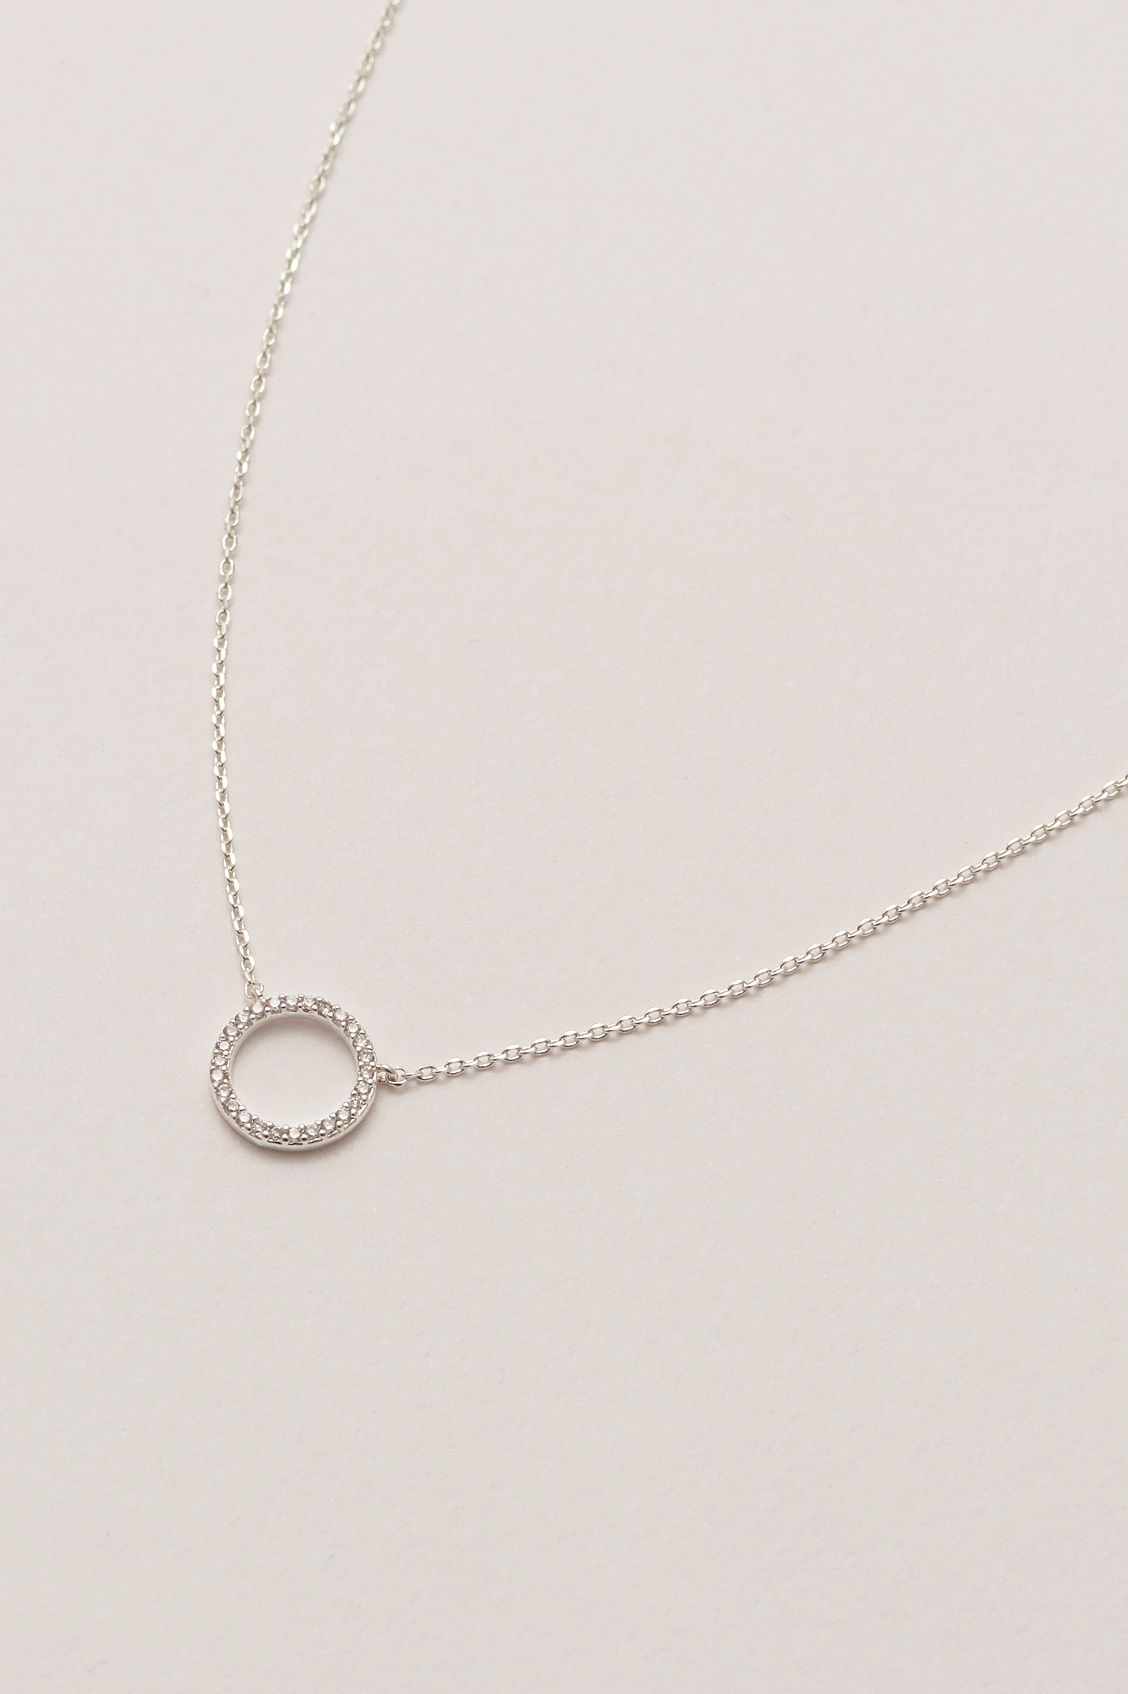 Circle Cz Necklace With Regard To 2019 Circle Of Sparkle Necklaces (Gallery 1 of 25)